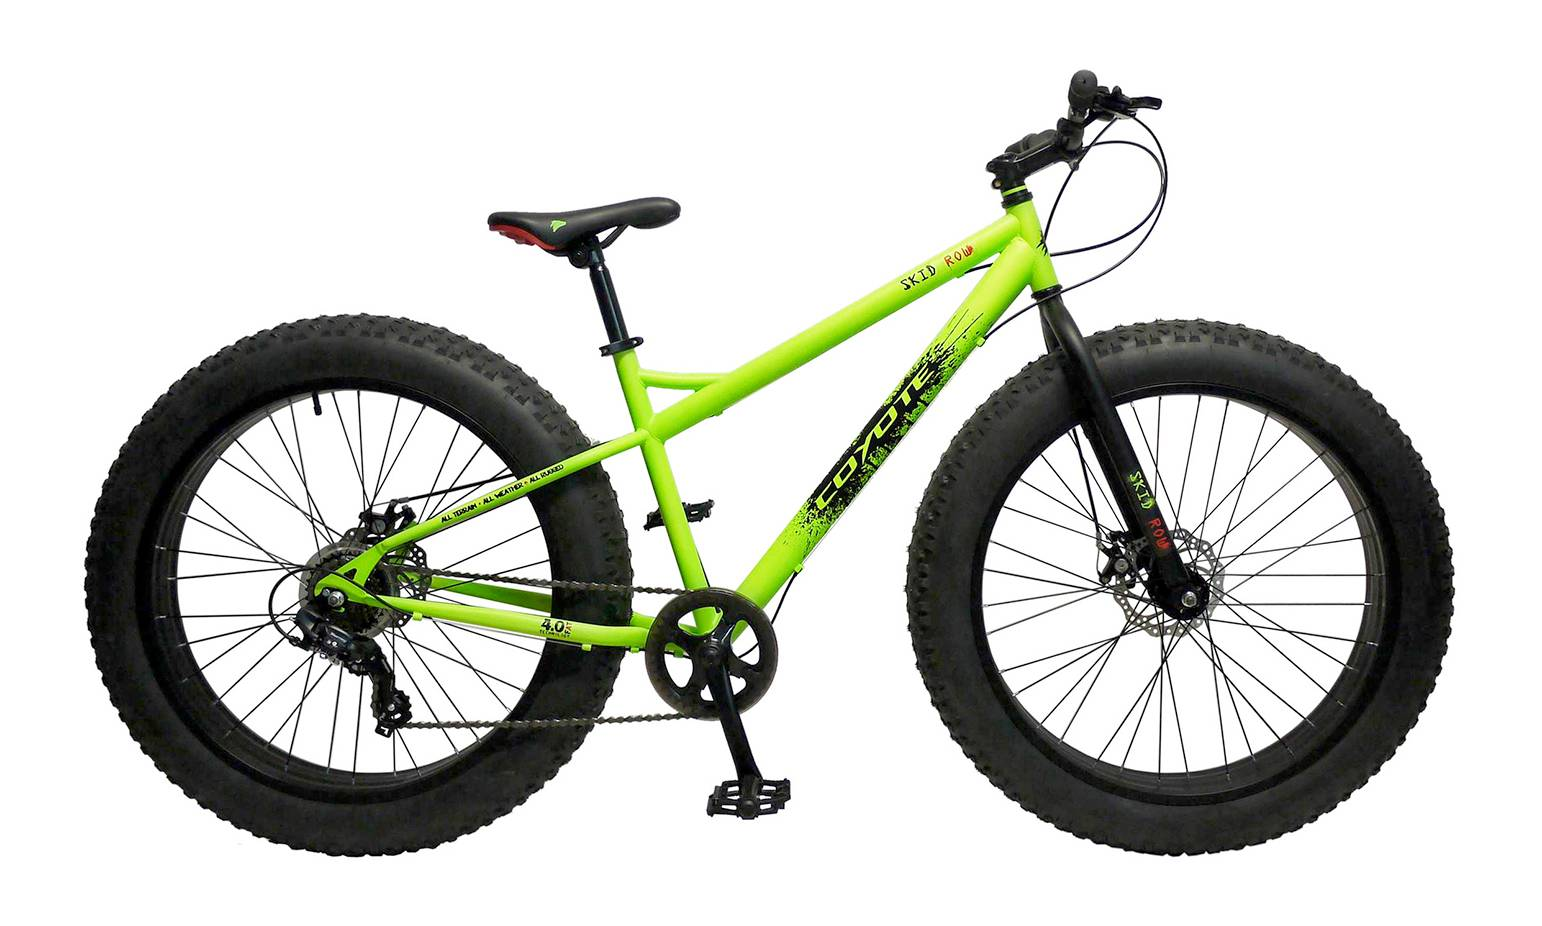 Avocet Coyote Fat-Tyre Bike - Skid Row - Green